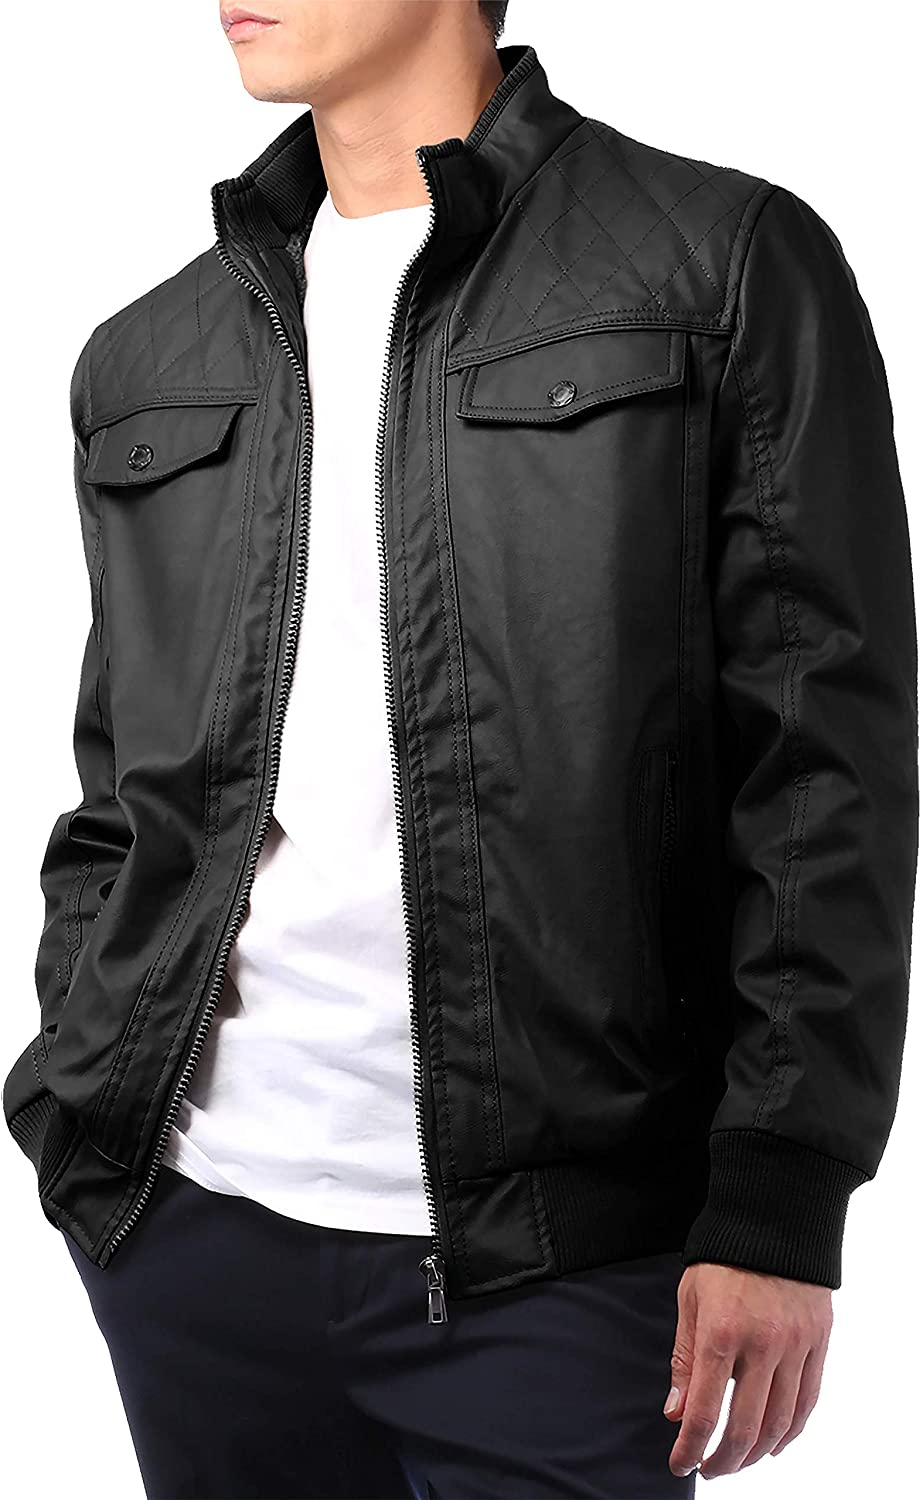 Hat and Beyond Mens Premium Faux Leather Jacket Motorcycle Rider Outerwear with Tactical Pockets